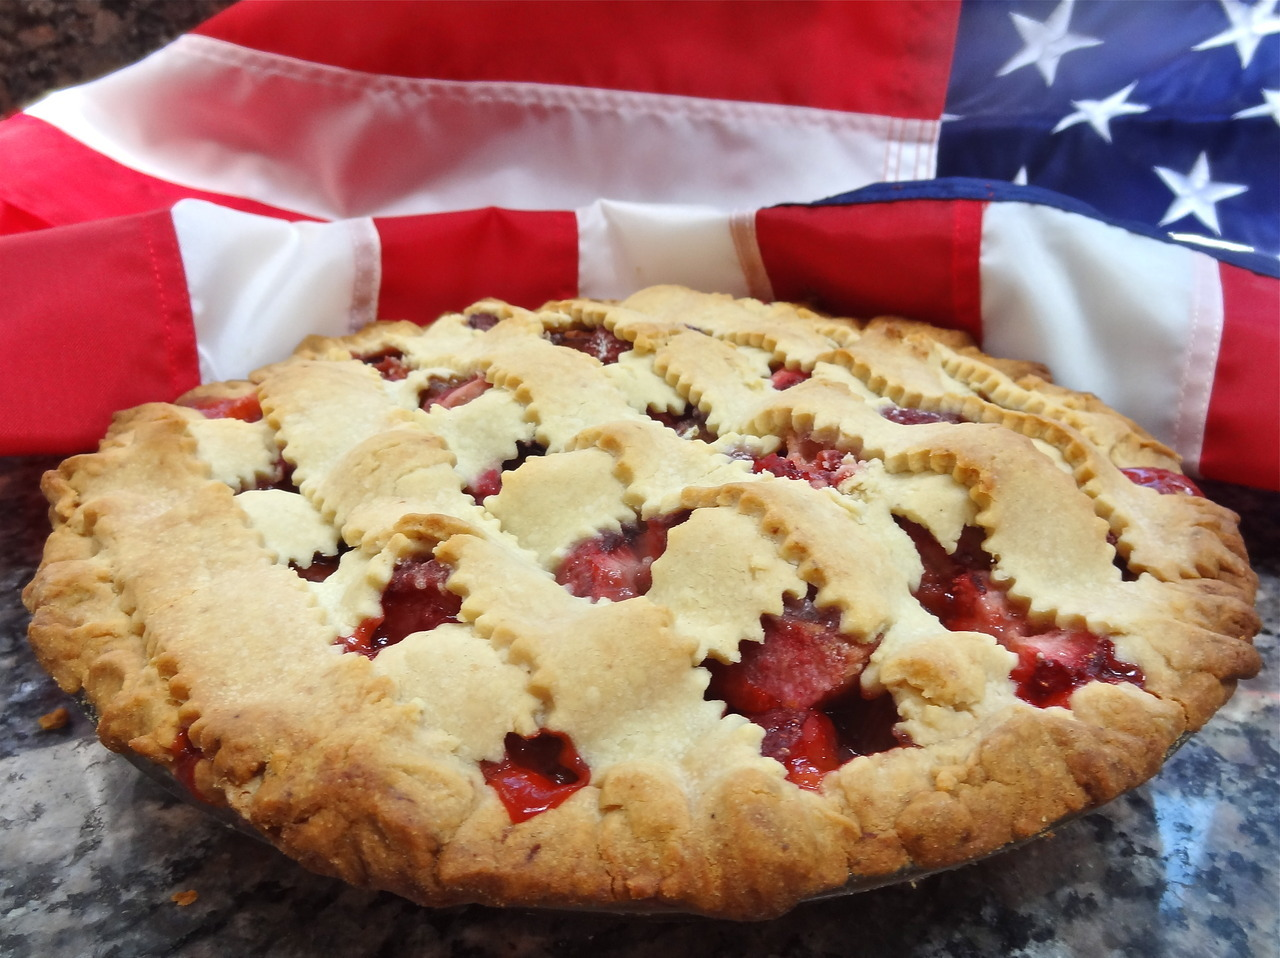 "Is there any food more ""American"" than pie? Okay, maybe. Hot dogs, hamburgers and stuff. Cole Slaw. Potato salad. And lots of others. Actually, none of the ones I mentioned were ""American"" at the start. Hot dogs, burgers and potato salad are German foods, Cole Slaw is Dutch and Pie began as British. No matter. They're American now, all terrific summer foods also. And all perfect for any Fourth of July celebration. So, when our local Hadassah decided that our biweekly Tea (for cancer patients and their caregivers at Stamford Hospital) should have a Fourth of July theme, I decided to bake a pie to give.  This one is red (sort of), white (beige crust/white sugar) and blue: a riff on Strawberry-Rhubarb Pie. It includes blackberries because I had some in the house and figured why not. You can leave out the blackberries and add more rhubarb and/or strawberries. Also, I used orange peel as flavor, but you can switch to lemon peel. And I used orange juice for the crust. First because orange goes really well with berries and rhubarb and also, my mother, a consummate pie baker, always told me that the liquid you use to make pie dough can be just about anything. She frequently used juice for fruit pie (the juice depended on the pie). Juice not only gives the crust more flavor, it helps the dough bake into a lovely brown color crust too. Strawberry-Rhubarb-Blackberry Pie dough: 2-1/2 cups all-purpose flour 3/4 teaspoon salt 1 teaspoon grated orange peel 1/2 cup unsalted butter 1/3 cup chilled vegetable shortening 4-5 tablespoons orange juice filling: 3 cups sliced (1/2-inch pieces) rhubarb, about one pound 2 cups strawberries cut in half 1 cup blackberries 2/3 cup sugar (or to taste) 1/4 teaspoon salt 5 tablespoons flour 1 teaspoon grated orange peel 1/4 teaspoon cinnamon 1 tablespoon butter   Combine the flour, salt and orange peel in a food processor. Add the butter and shortening in chunks and process on pulse about 24 times, until the mixture resembles coarse meal. Gradually add as much of the juice as is needed to make a soft, but not sticky dough. Cut the dough in half, flatten into disks and let the dough rest in the refrigerator for 30 minutes. Preheat oven to 375 degrees. Roll the dough into circles to fit a 9"" pie pan. Place one circle inside the pie pan. To make the filling, combine the rhubarb, strawberries, blackberries, sugar, salt, flour, orange peel and cinnamon. Add the filling to the pie pan. Cut the butter into chunks and place on top of the filling. Cut strips from the second dough circle and place them in a lattice design on top of the fruit. Seal the edges where the strips meet the bottom crust. Bake for 50-60 minutes or until golden brown. Makes one 9-inch pie"